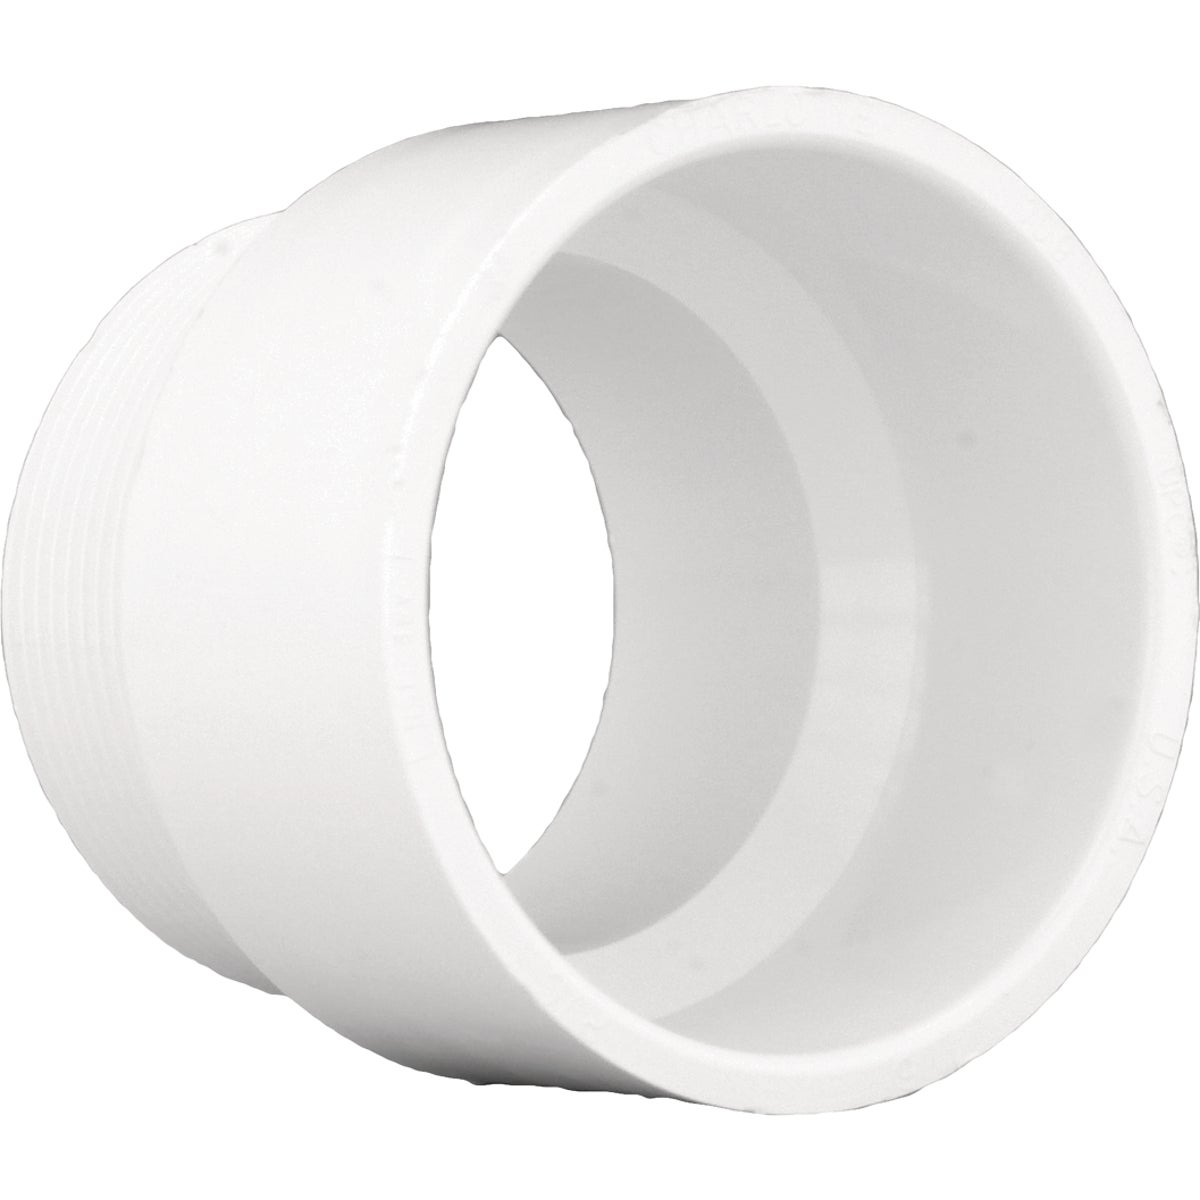 "1-1/4"" DWV MALE ADAPTER - 70414 by Genova Inc  Pvc Dwv"